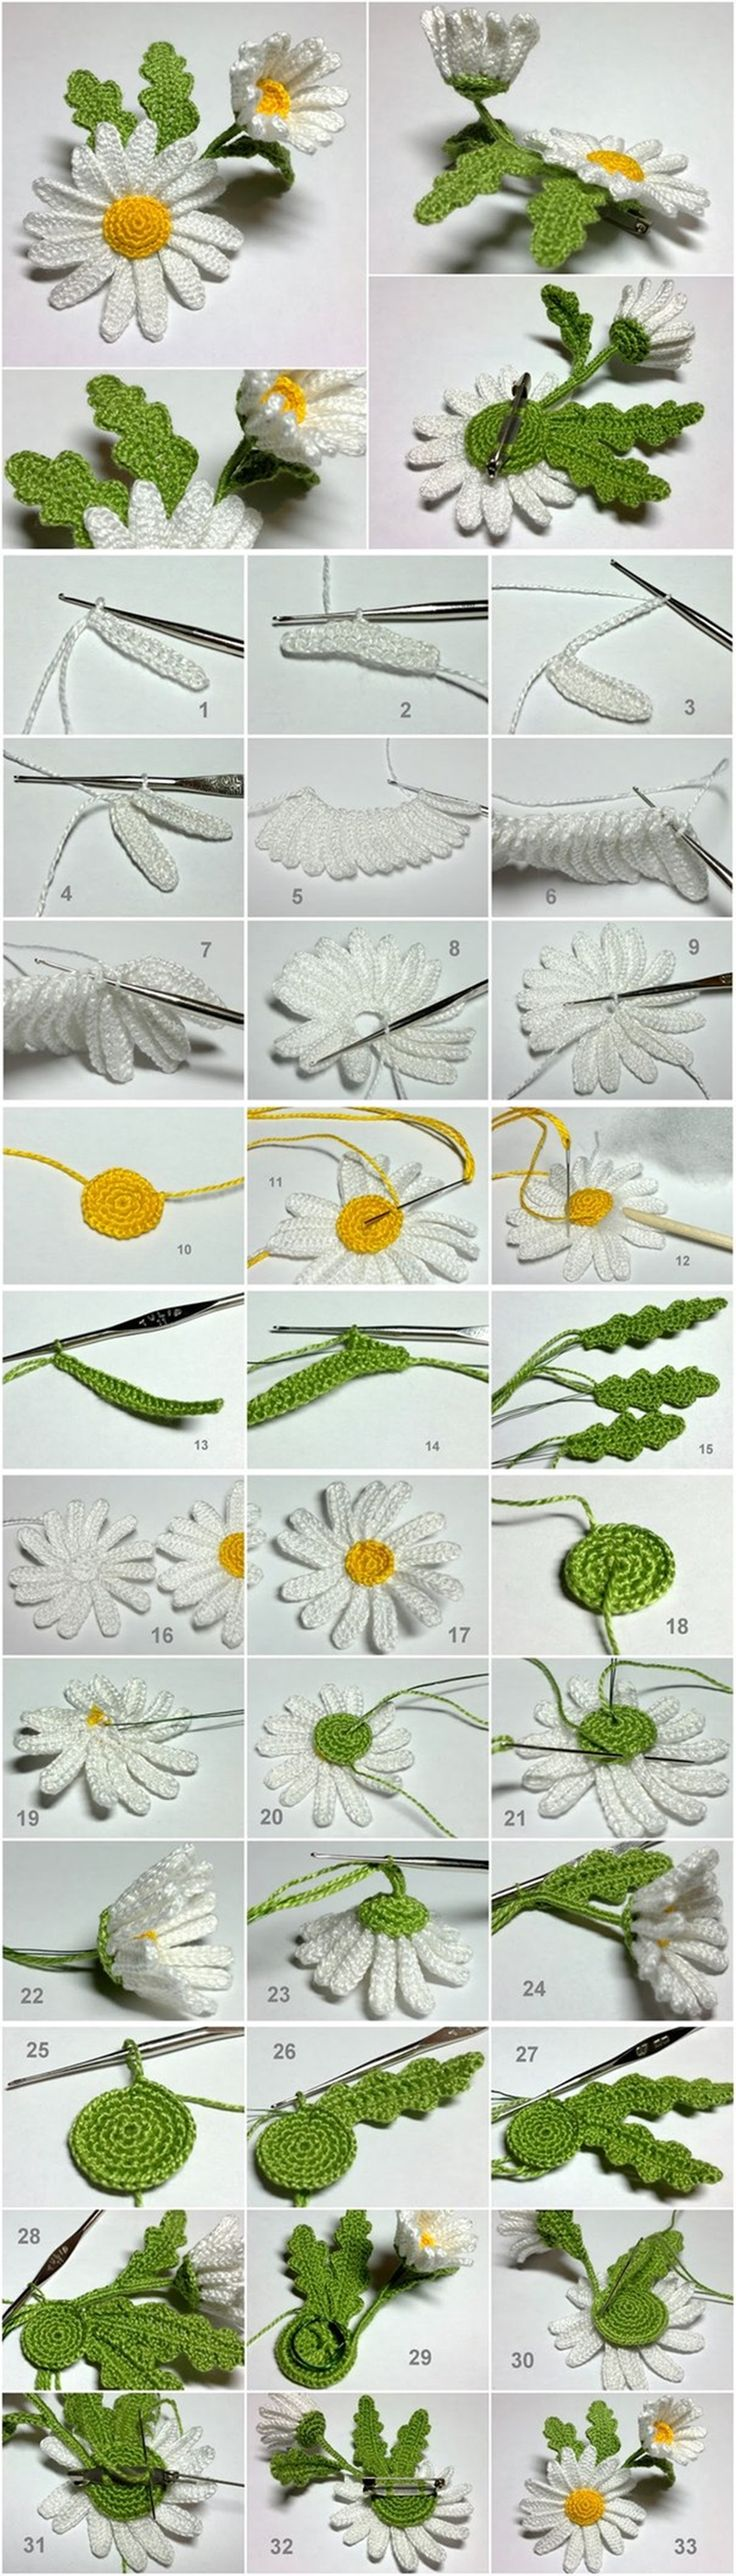 crochet 3D daisy tutorial